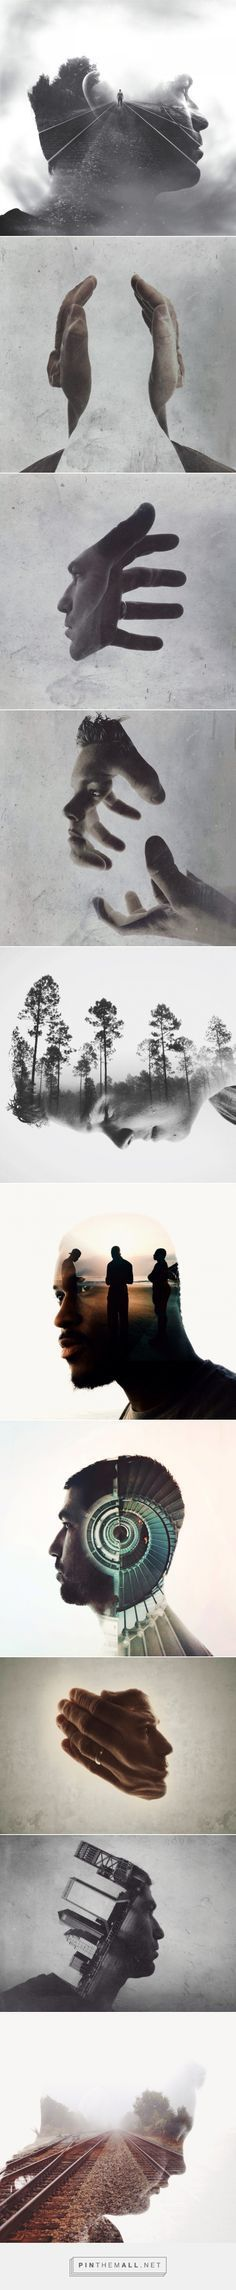 // NUUN | BERLIN // Double Exposure Portraits by Brandon Kidwell | Inspiration Grid | Design Inspiration - created via http://pinthemall.net #NuunBerlin #InternationalArt #ArtNouveau #ArtVenture